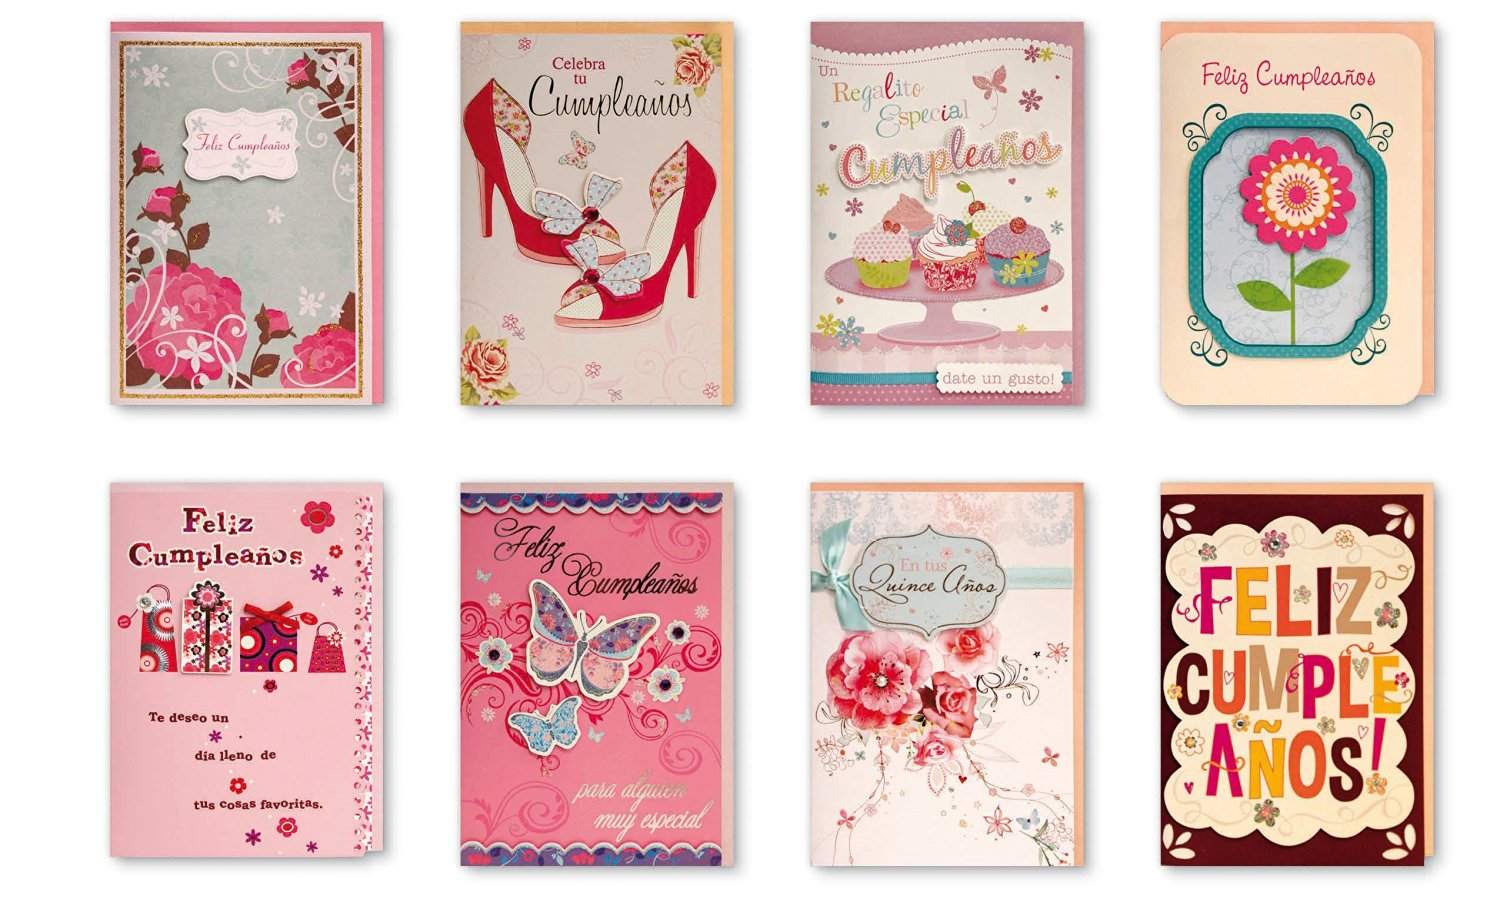 Assorted 8 Pack Boxed Handmade Embellished Spanish Birthday Greeting Cards Box Set Of Designs For